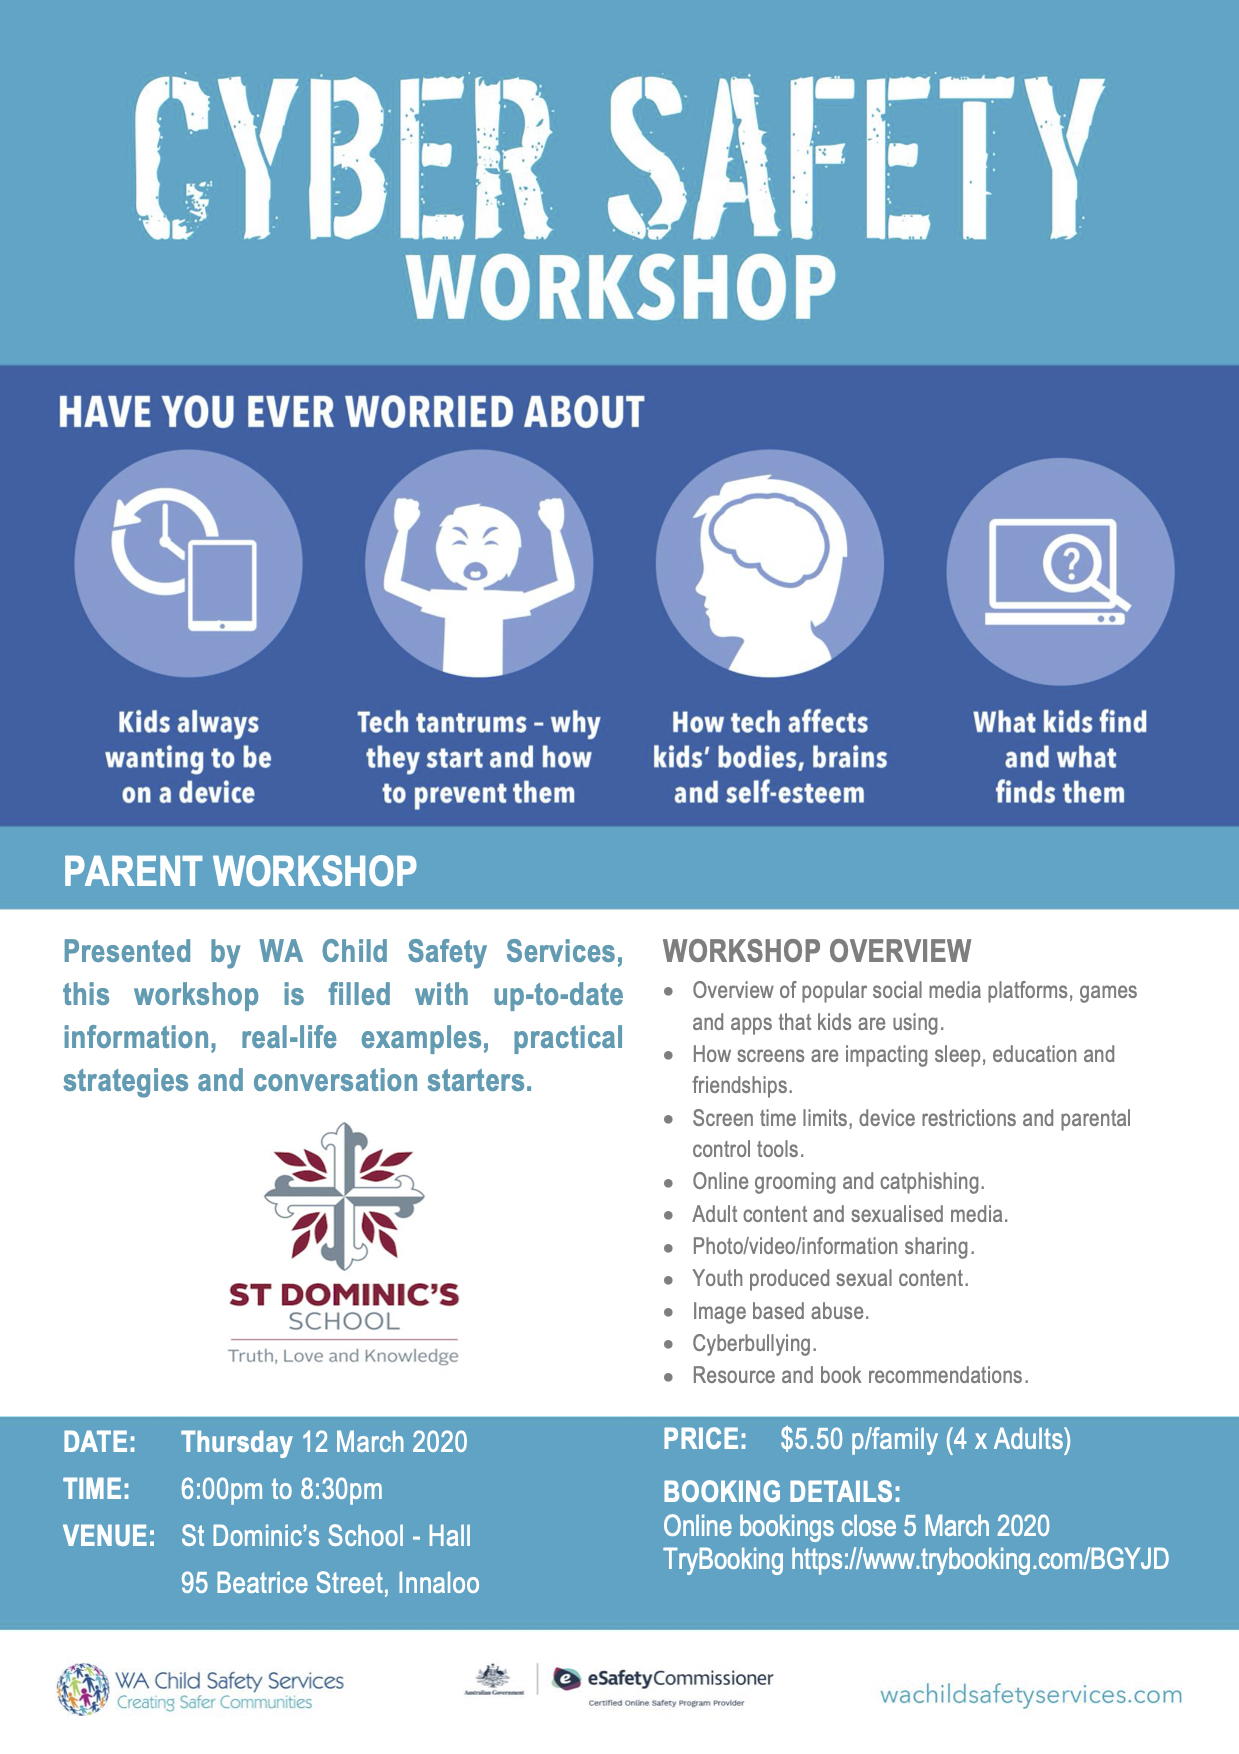 CyberSafetyWorkshop at St Dominic's in 2020 - Presented byWA Child Safety Services